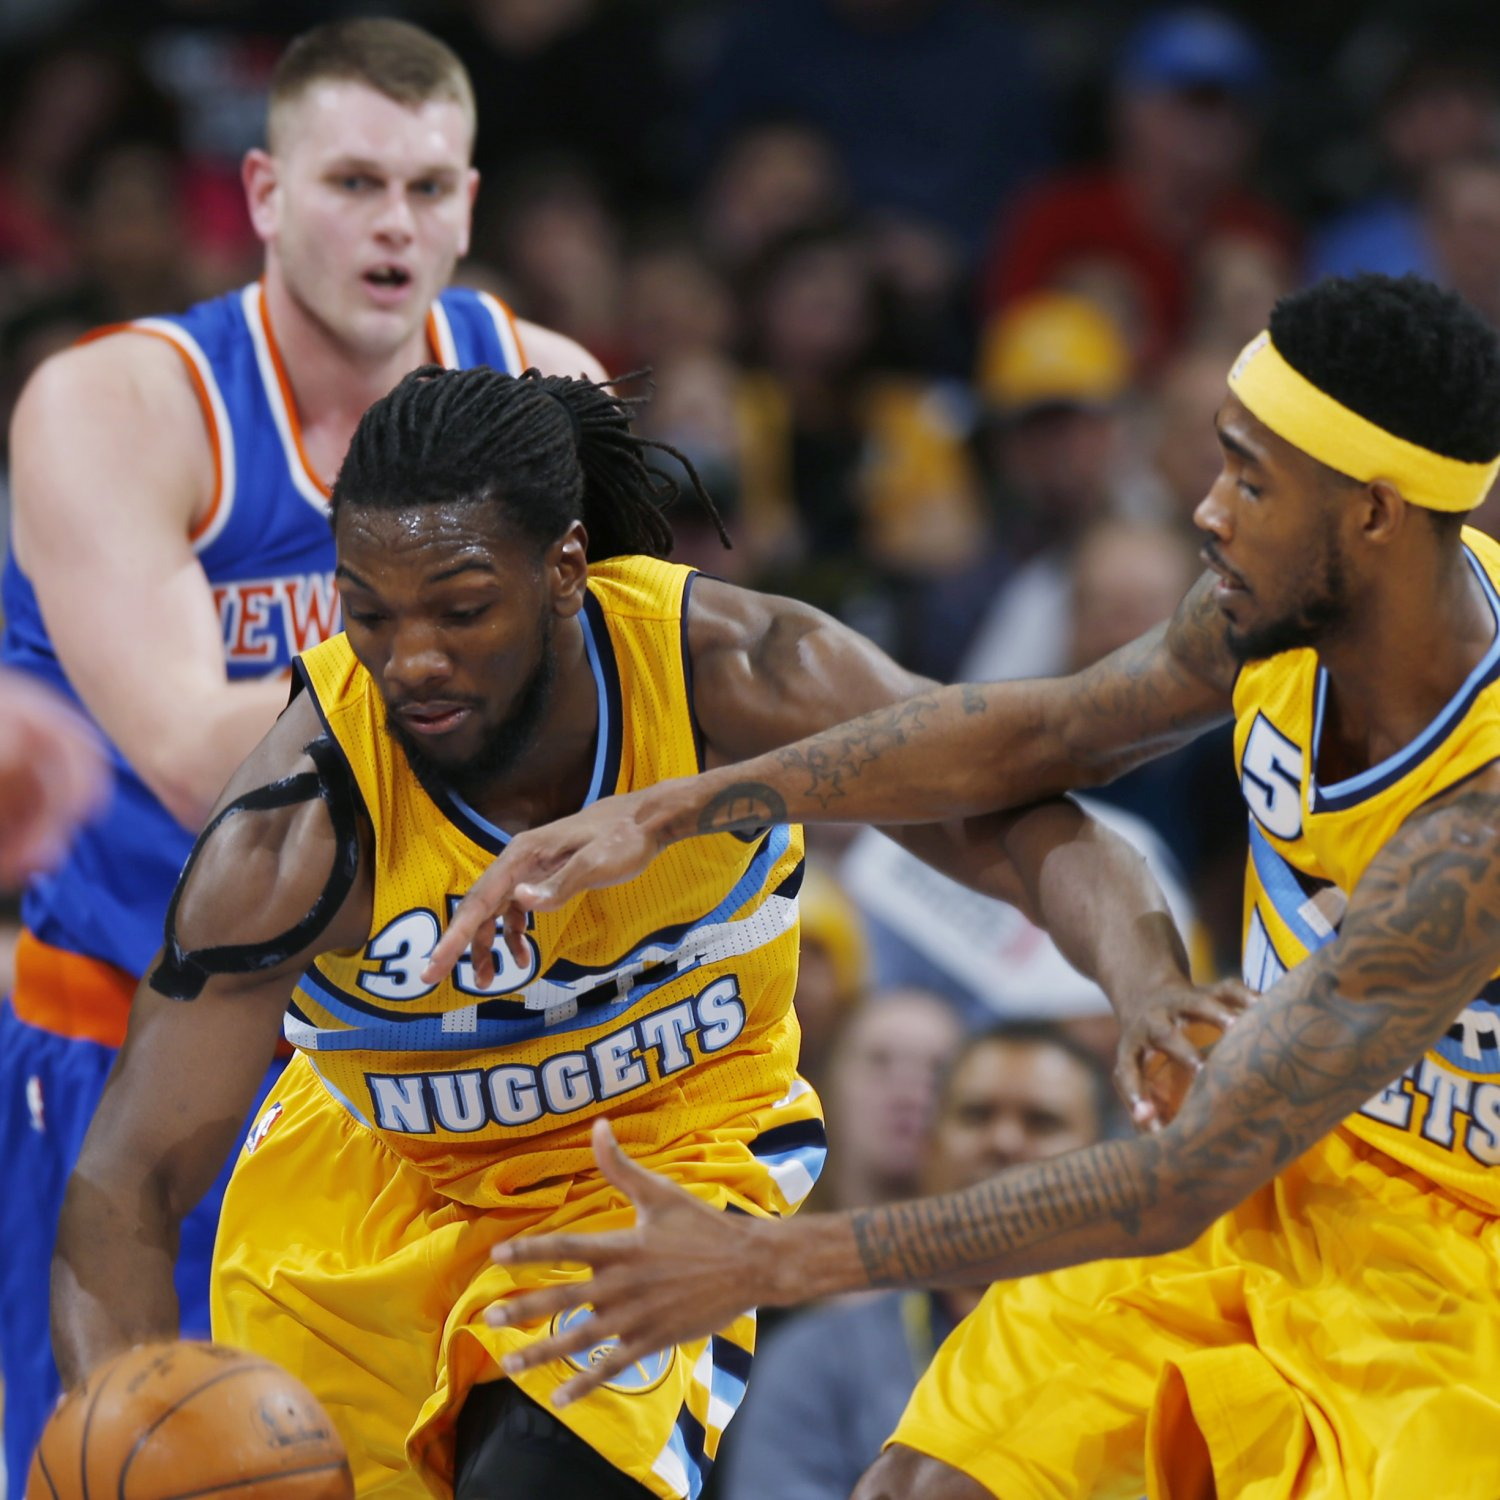 New York Knicks Vs. Denver Nuggets 3/9/15: Video